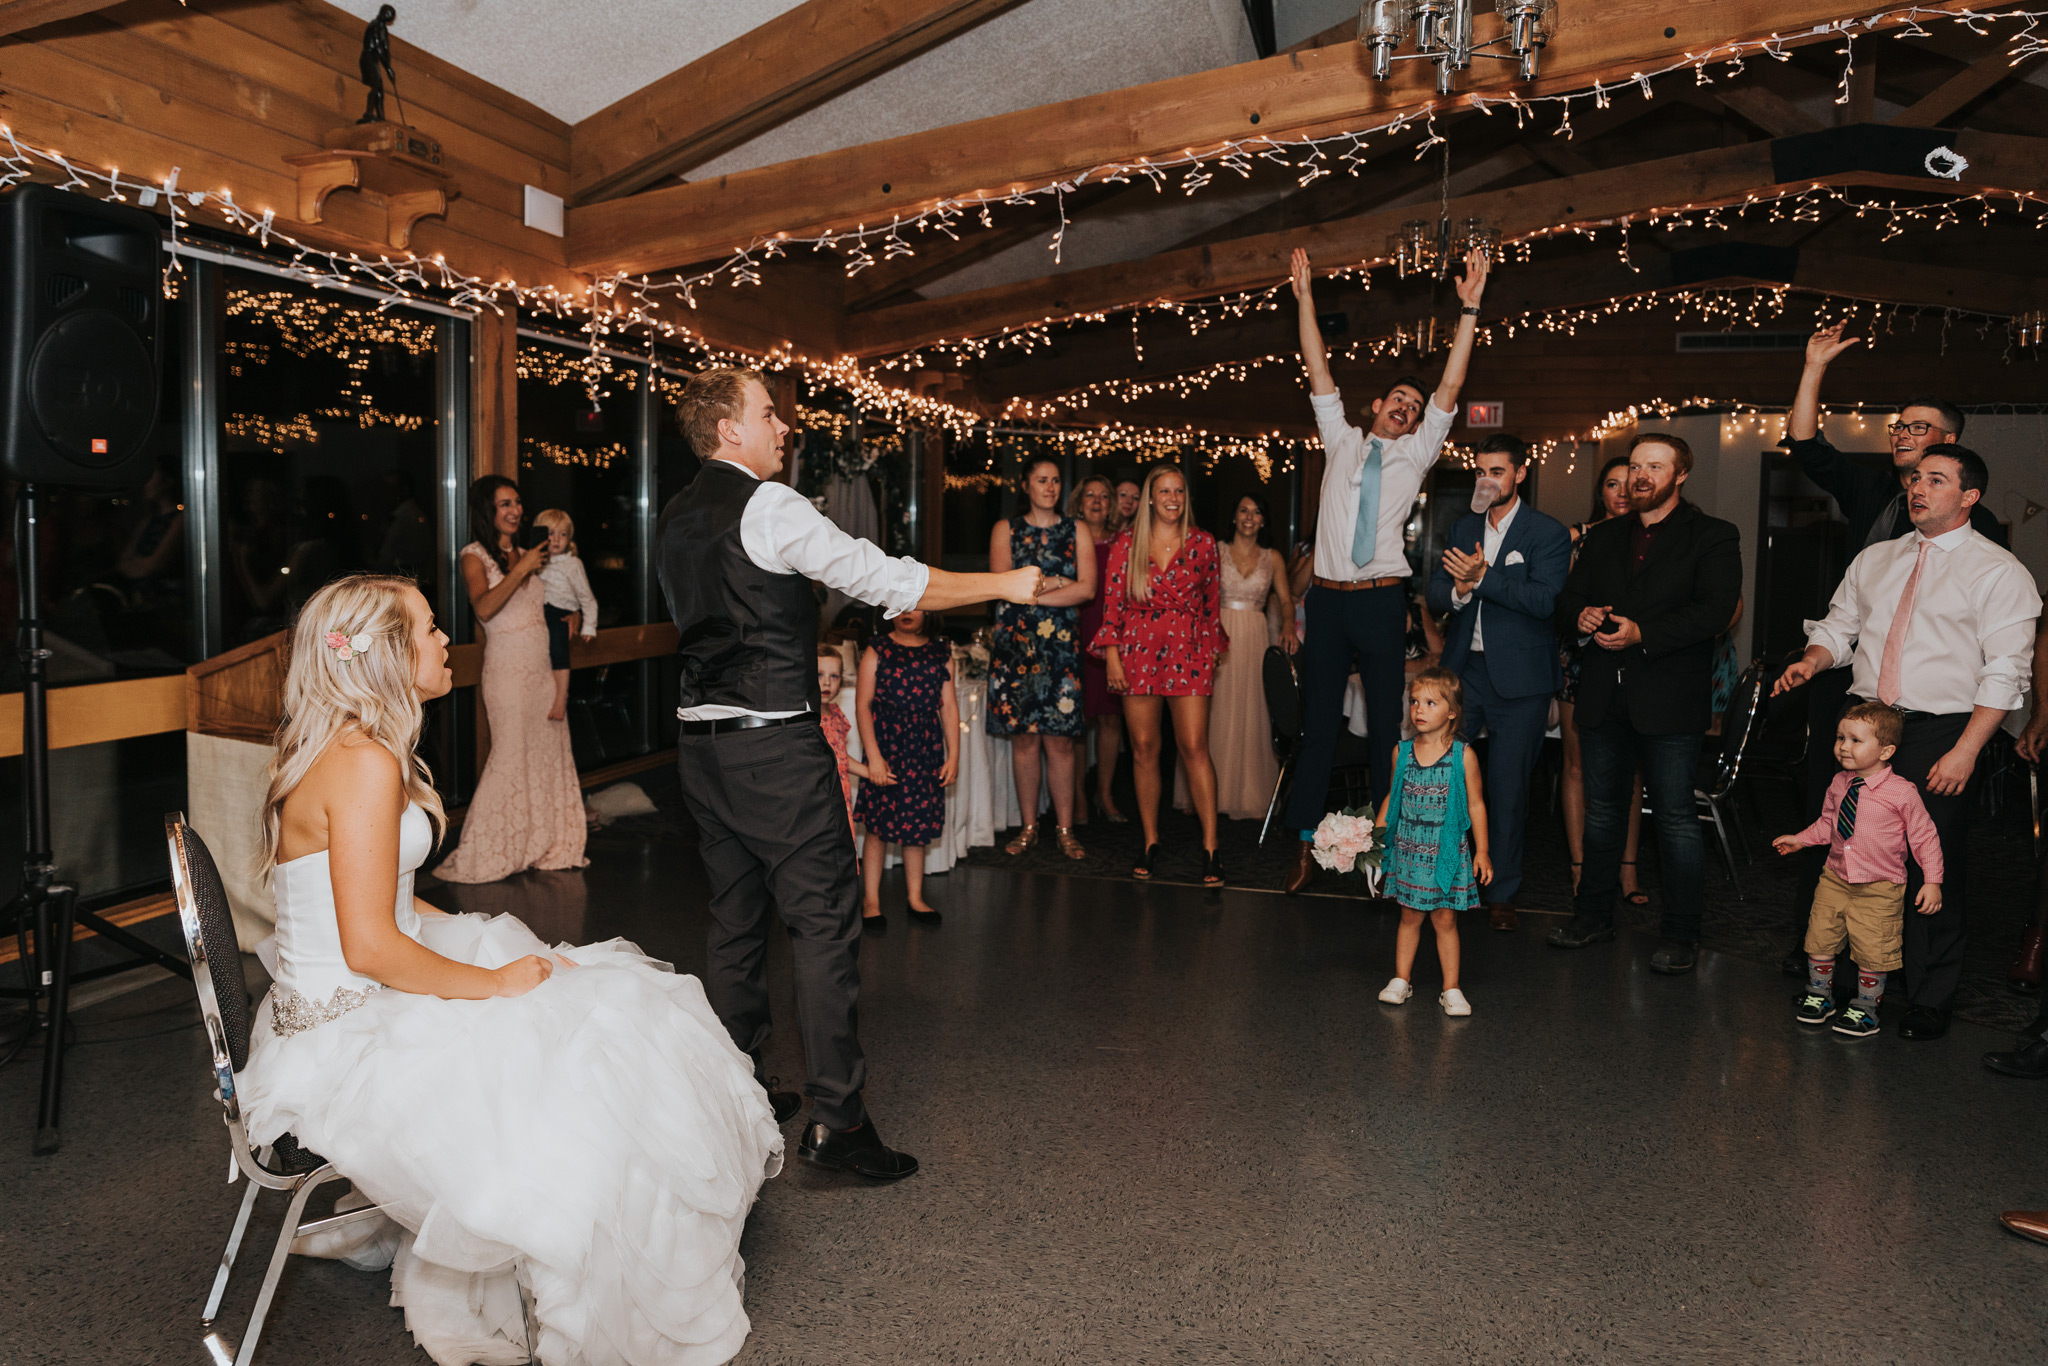 groom tosses garter at wedding reception